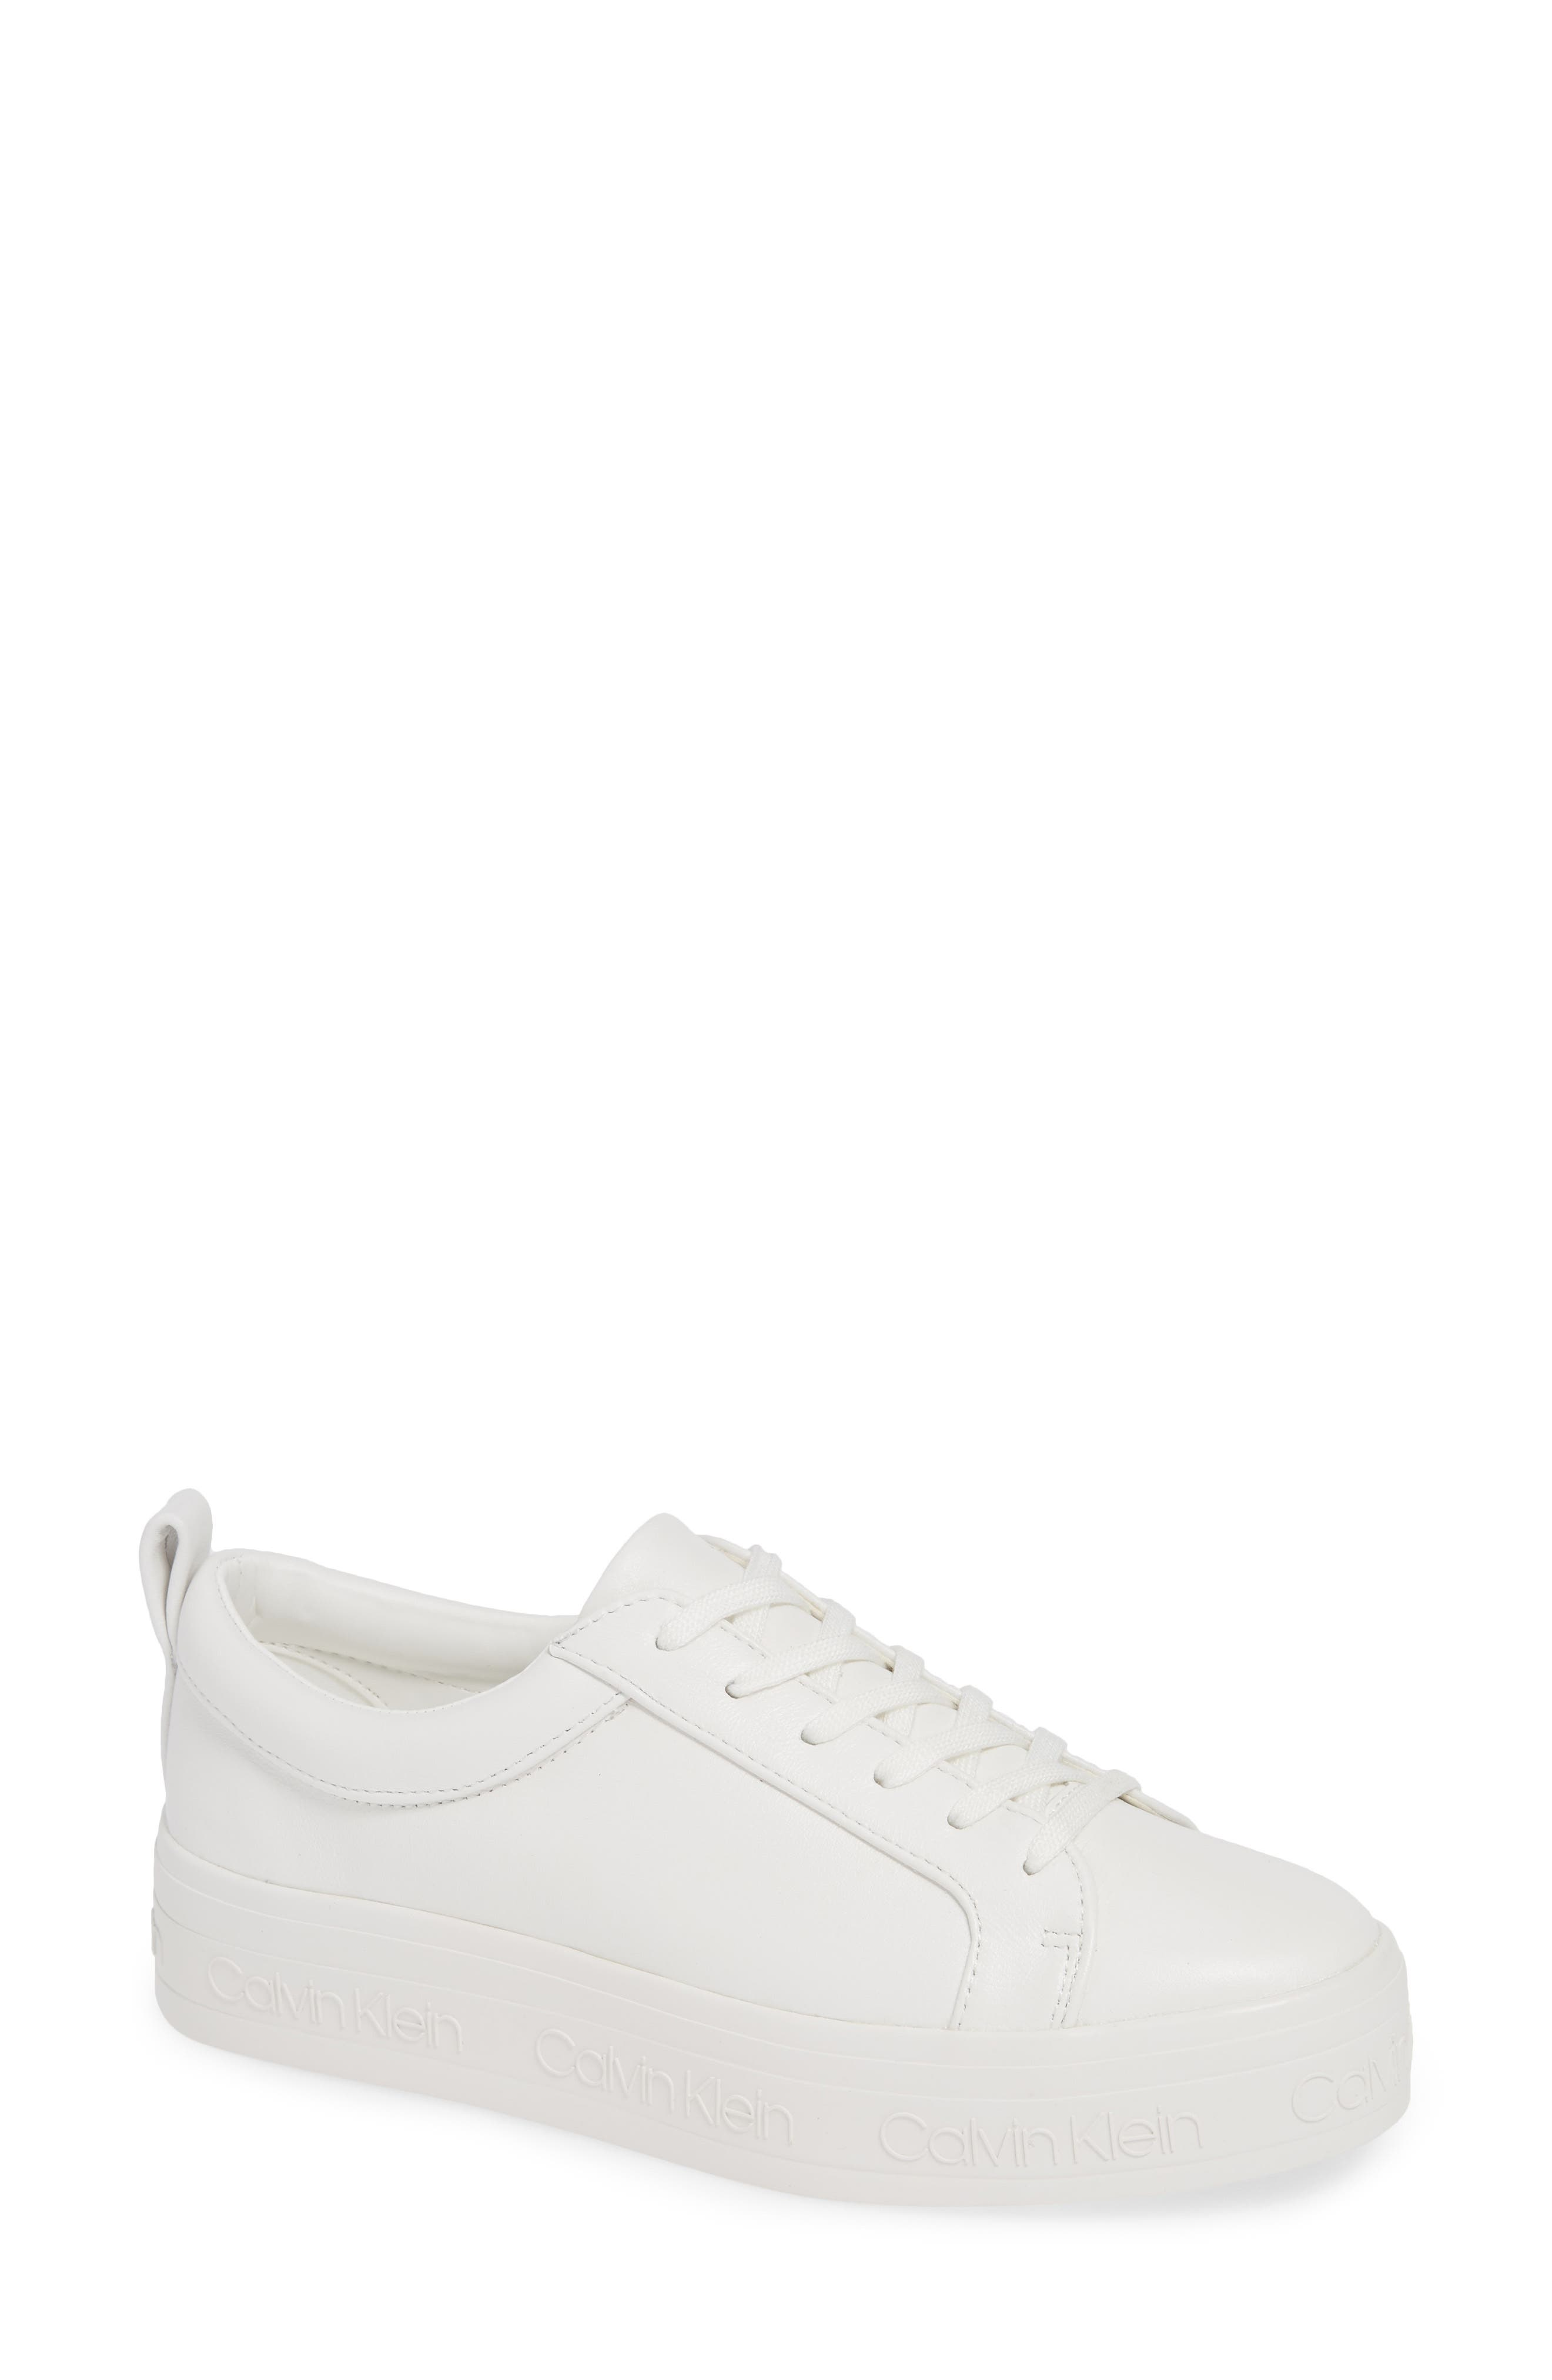 CALVIN KLEIN Jaelee Sneaker, Main, color, WHITE NAPPA LEATHER